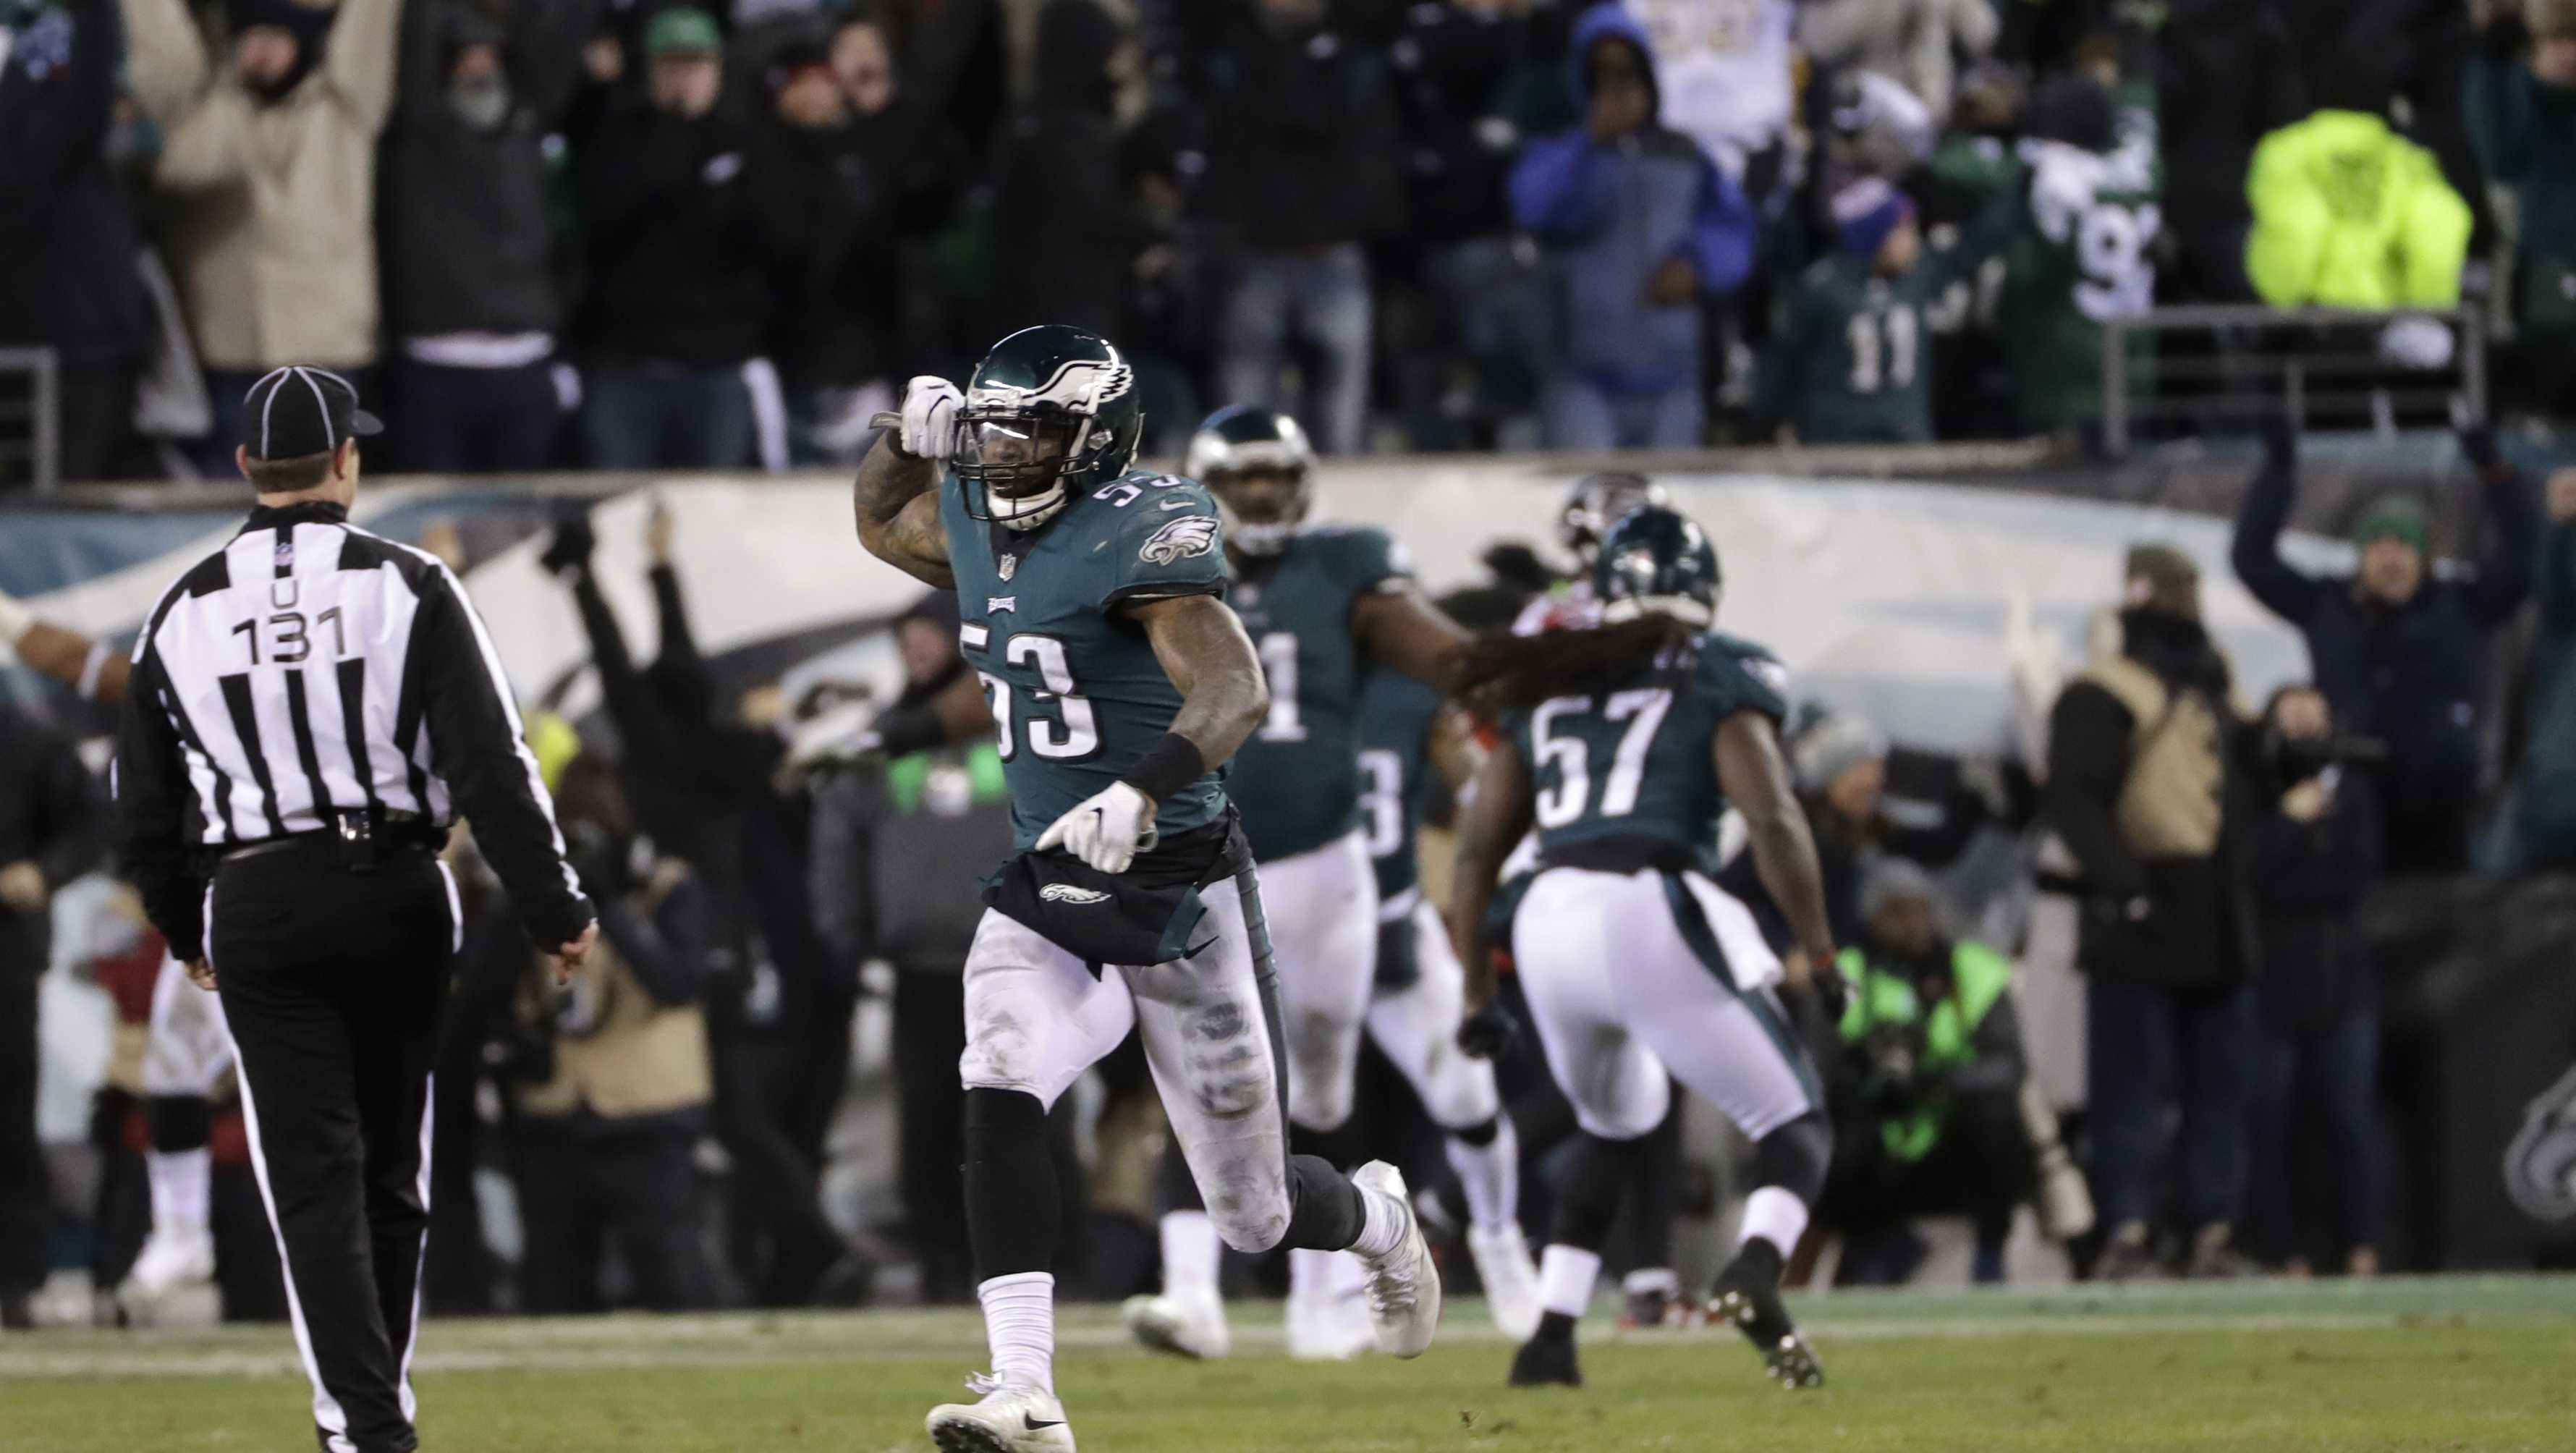 Philadelphia Eagles' Nigel Bradham (53) reacts after stopping the Atlanta Falcons on fourth down during the second half of an NFL divisional playoff football game, Saturday, Jan. 13, 2018, in Philadelphia.